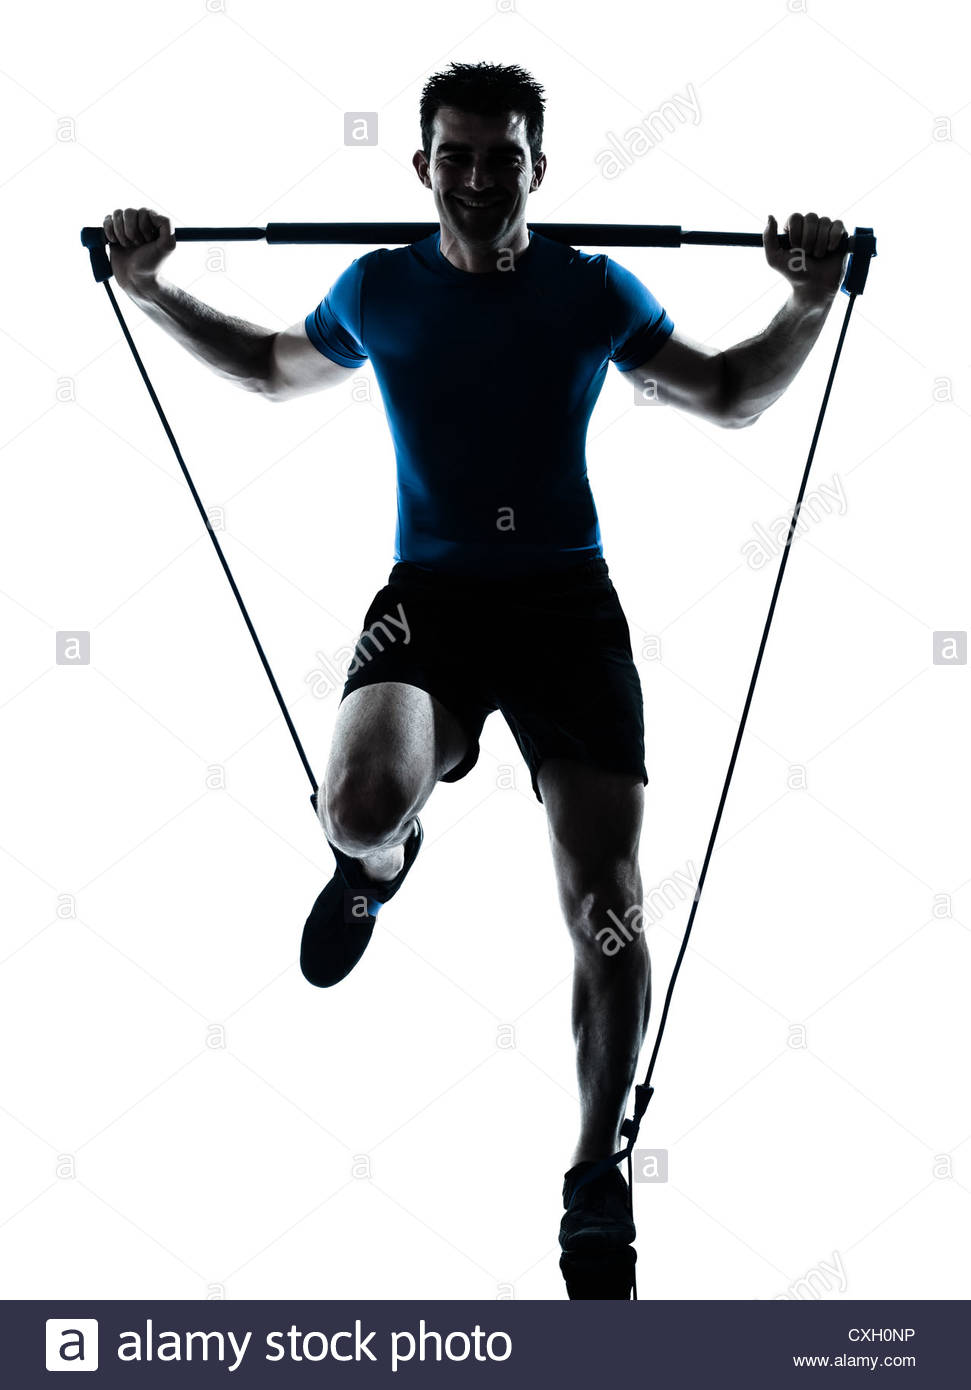 971x1390 One Caucasian Man Exercising Gymstick Workout Fitness